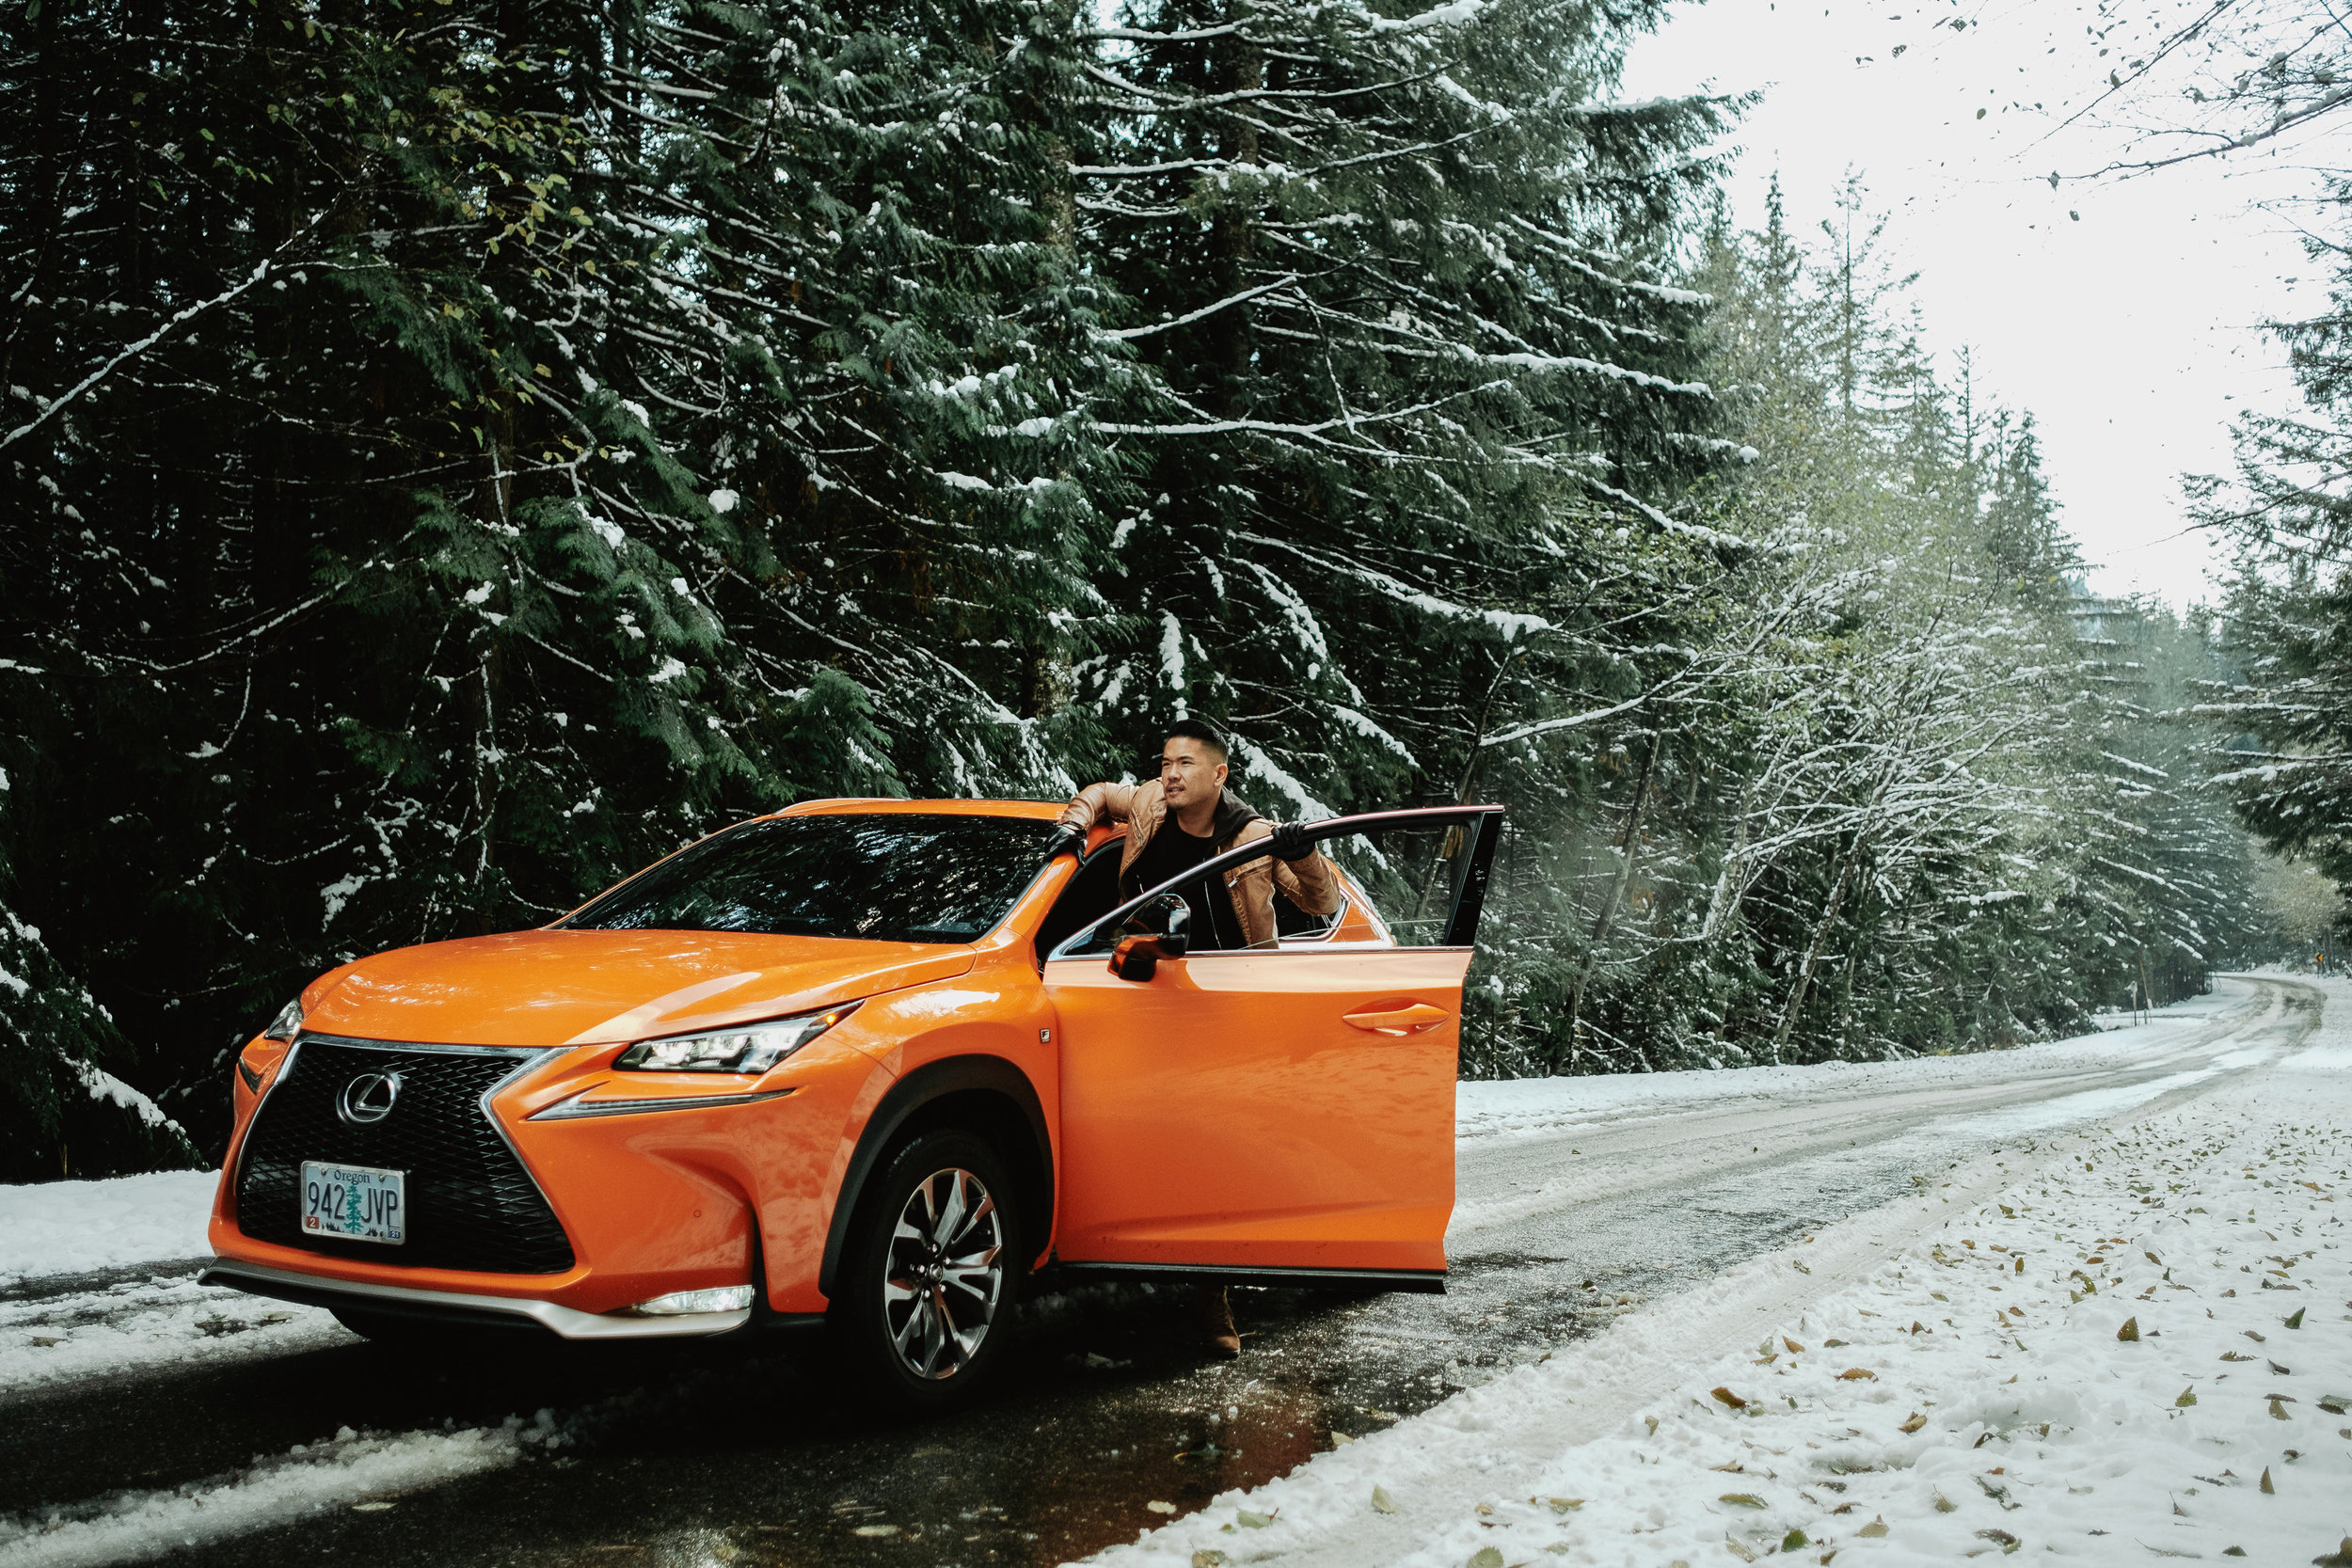 Lexus NX 2018 Spec Ad With Nelson Yong - CAPTUS PHOTOGRAPHY-0249.jpg